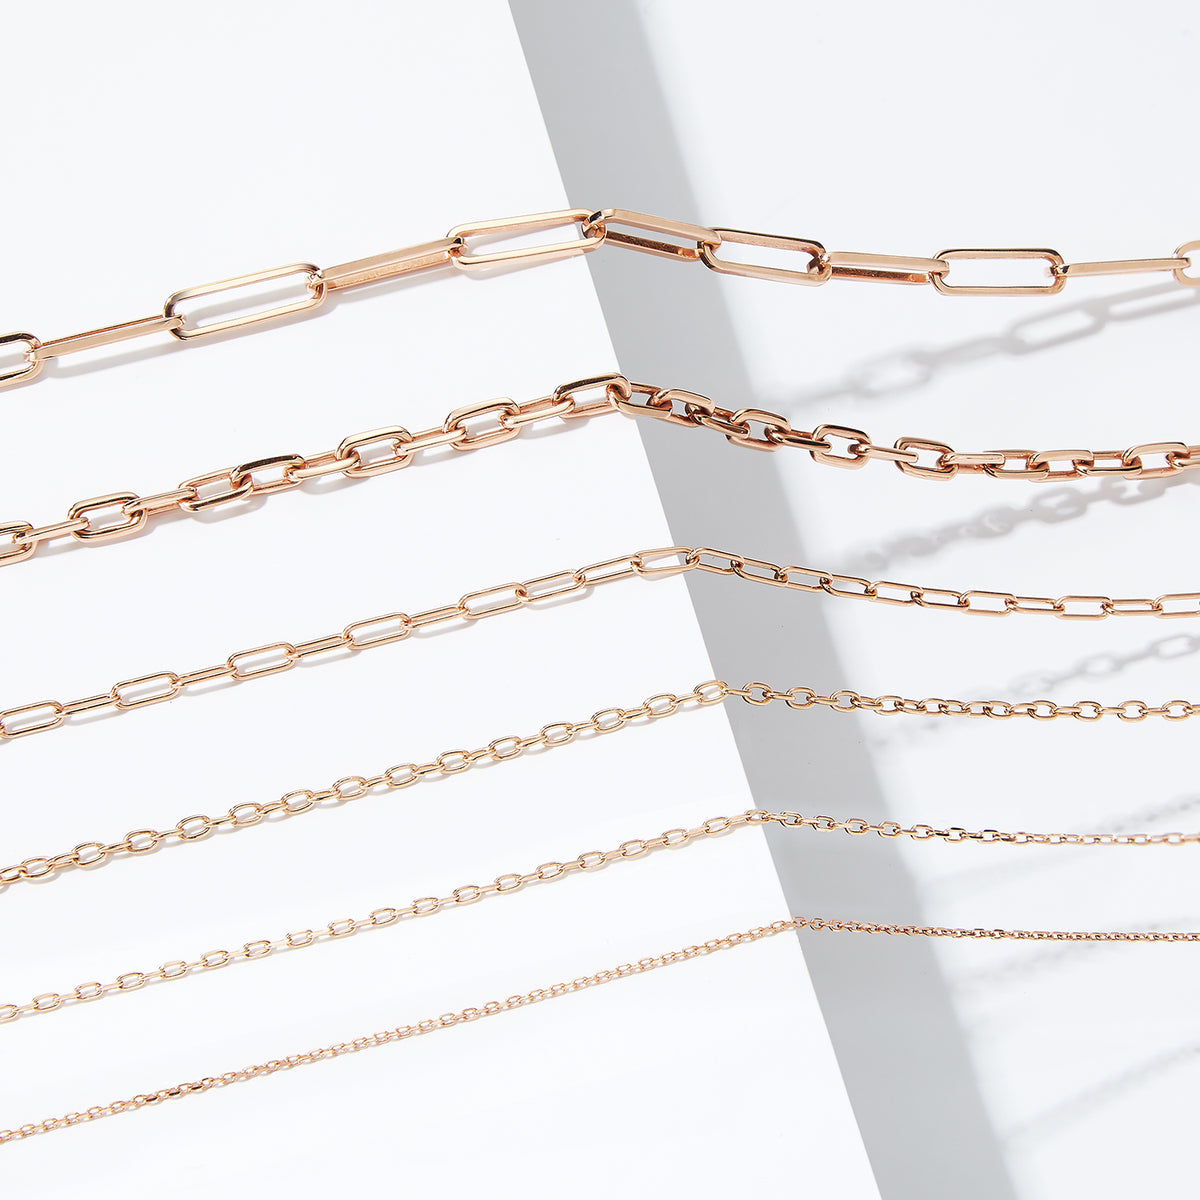 Details about  /Real 18K Rose Gold Chain 1mmW Women/'s Wheat Link Necklace 20/'/'L Adjustable